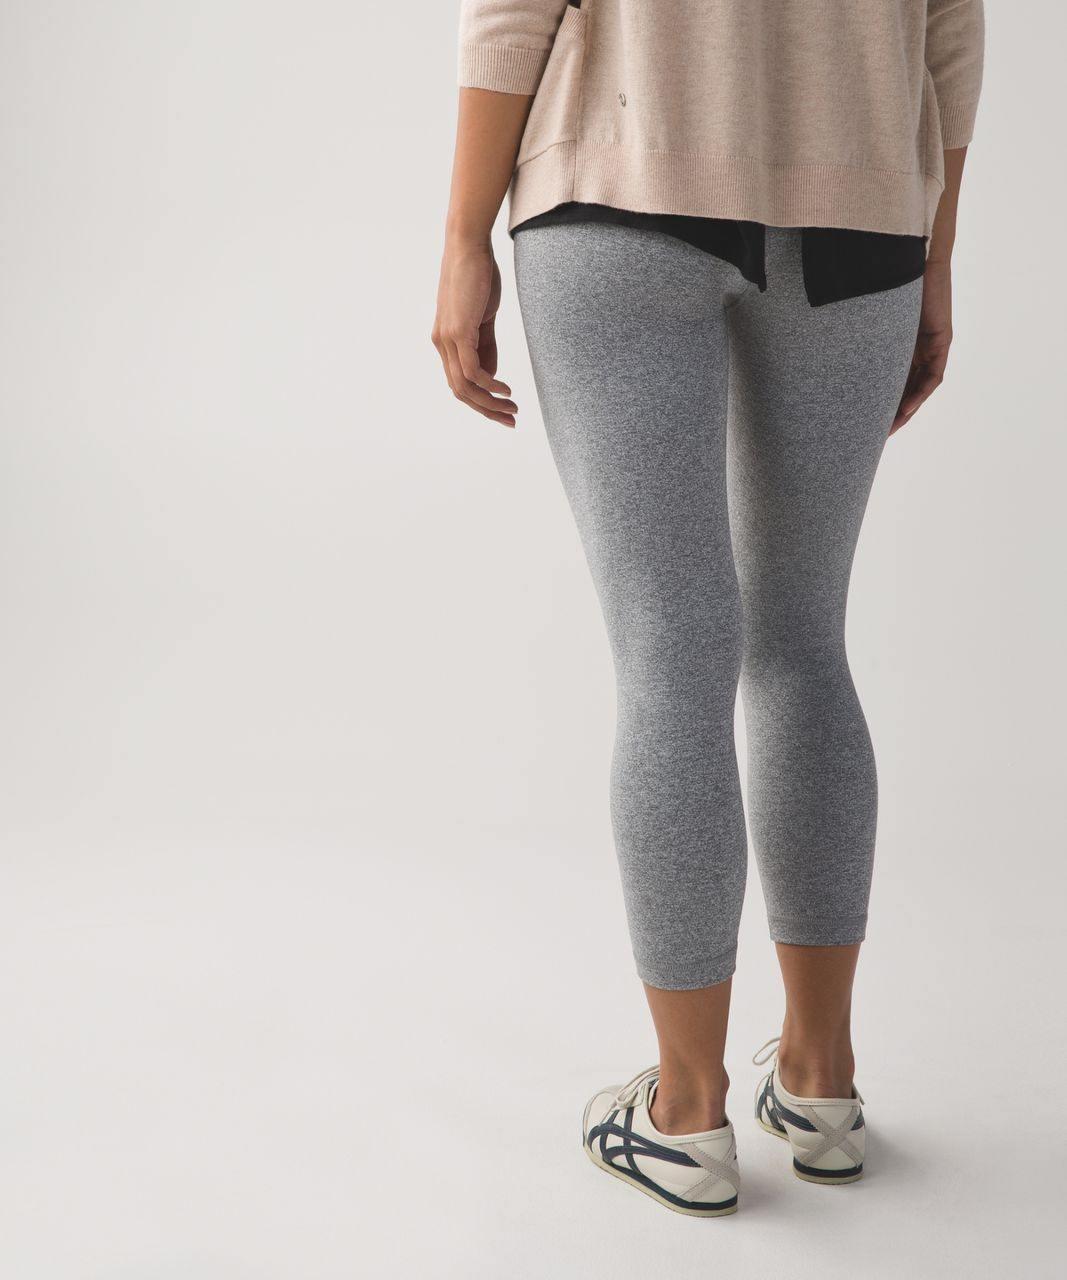 Lululemon Wunder Under Crop II (First Release) - Heathered Slate